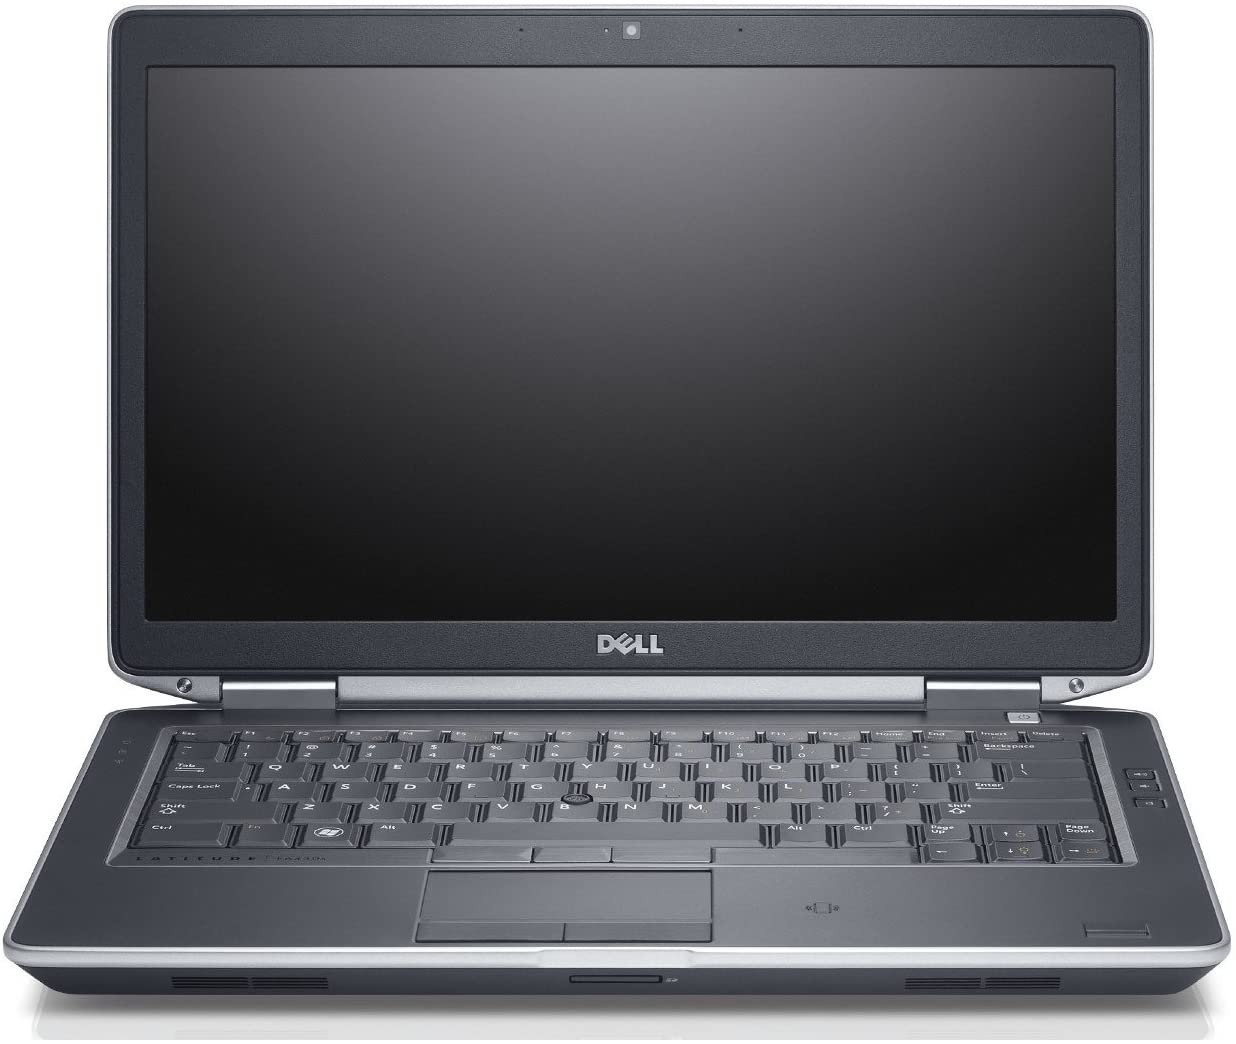 Dell Laptop Latitude E6440 14in Intel Core i5 4300M 2.6GHz 8GB RAM 500GB HD Webcam Windows 10 Professional (Renewed)